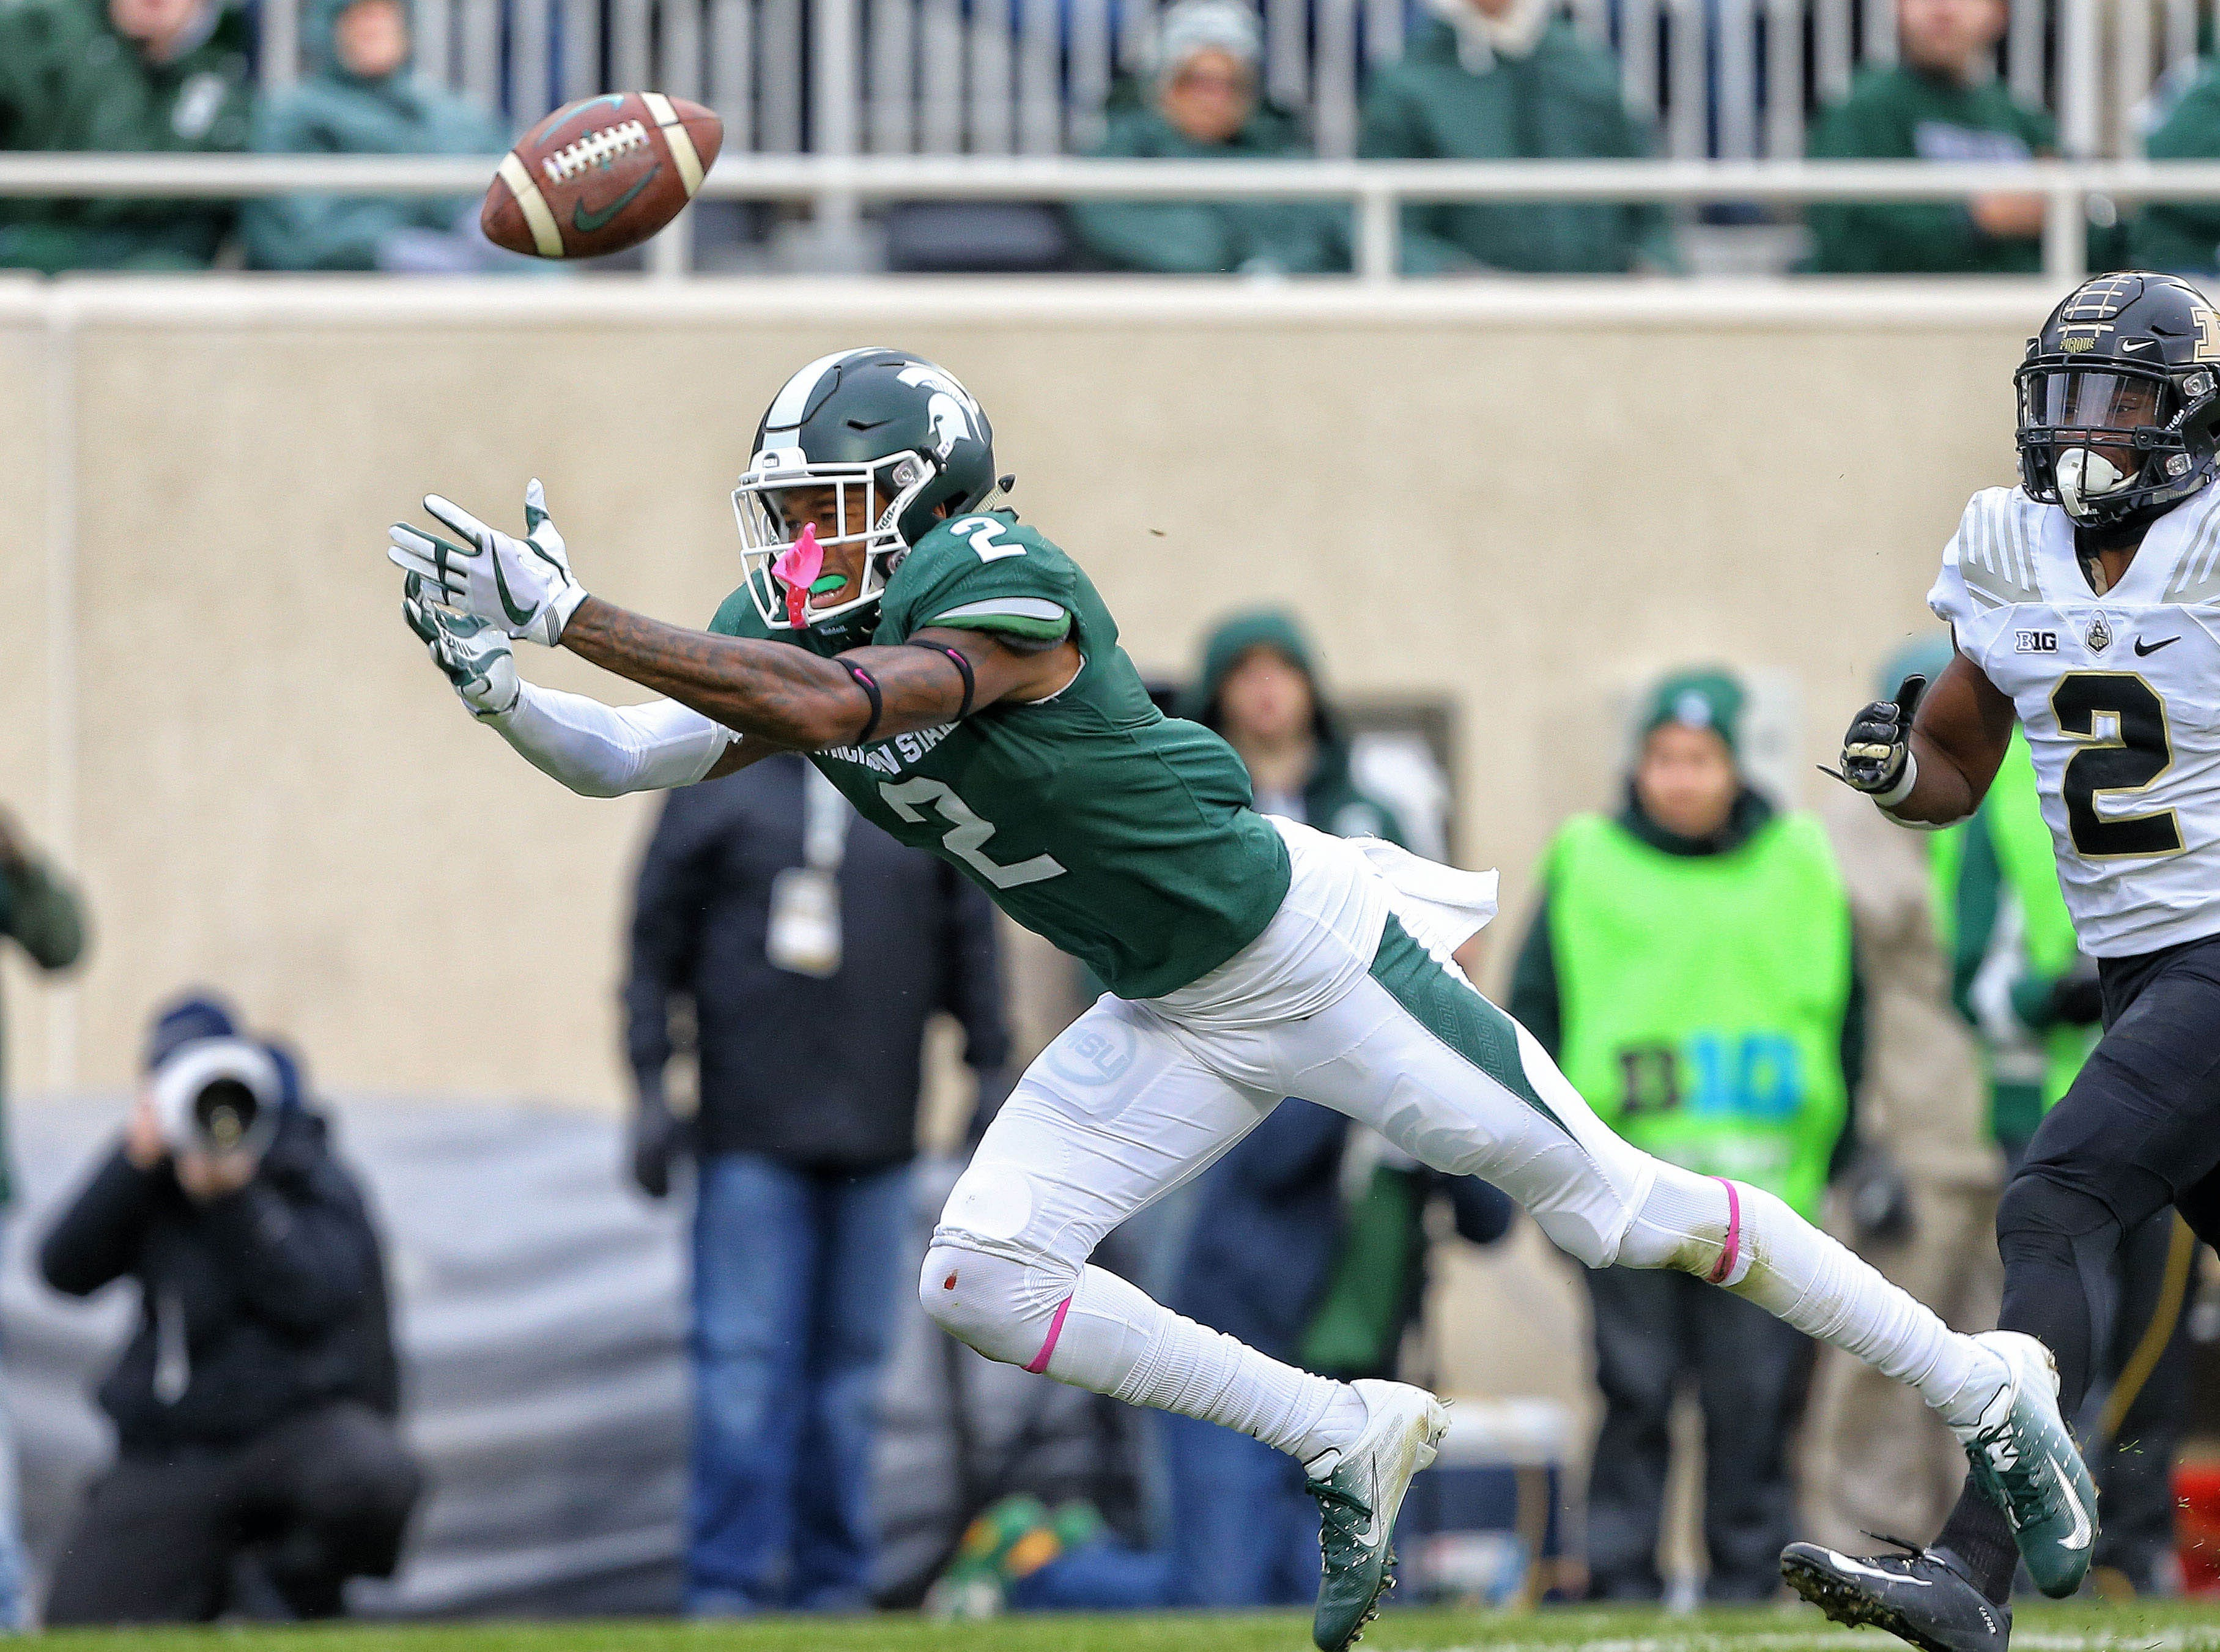 Oct 27, 2018; East Lansing, MI, USA; Michigan State Spartans cornerback Justin Layne (2) attempts to make a catch during the first quarter of a game against the Purdue Boilermakers at Spartan Stadium. Mandatory Credit: Mike Carter-USA TODAY Sports